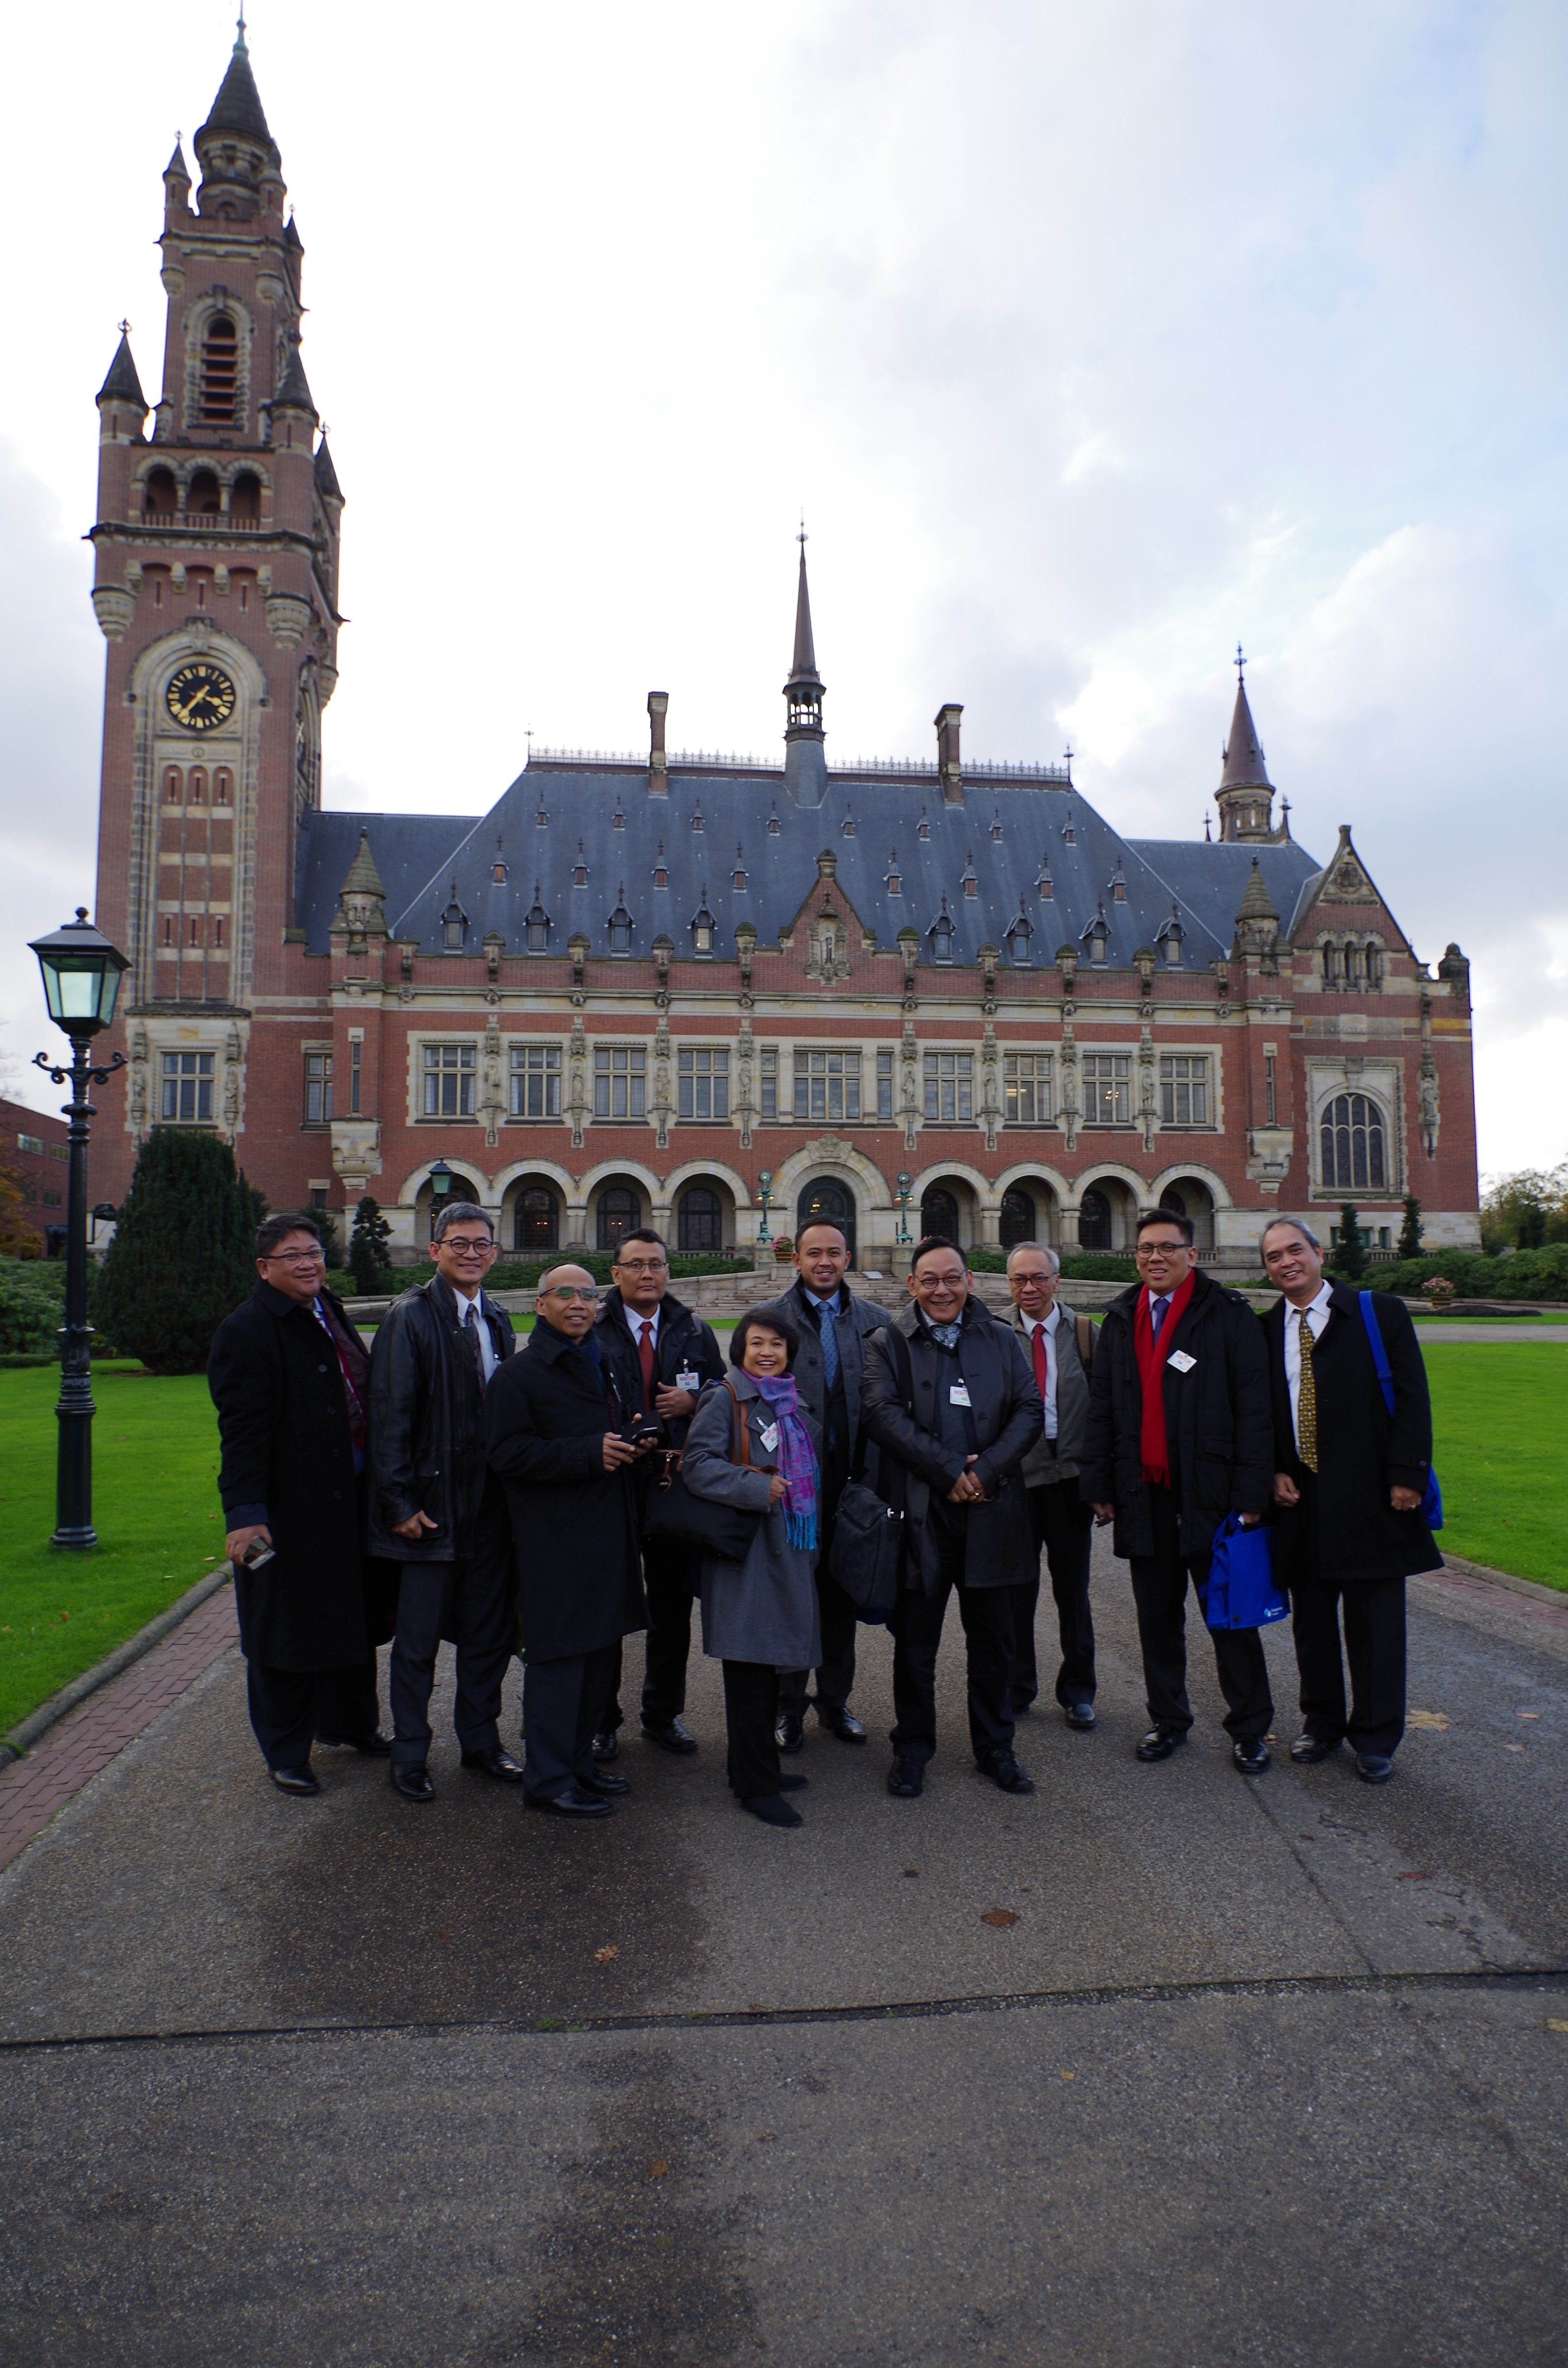 Participants in front of the Peace Palace